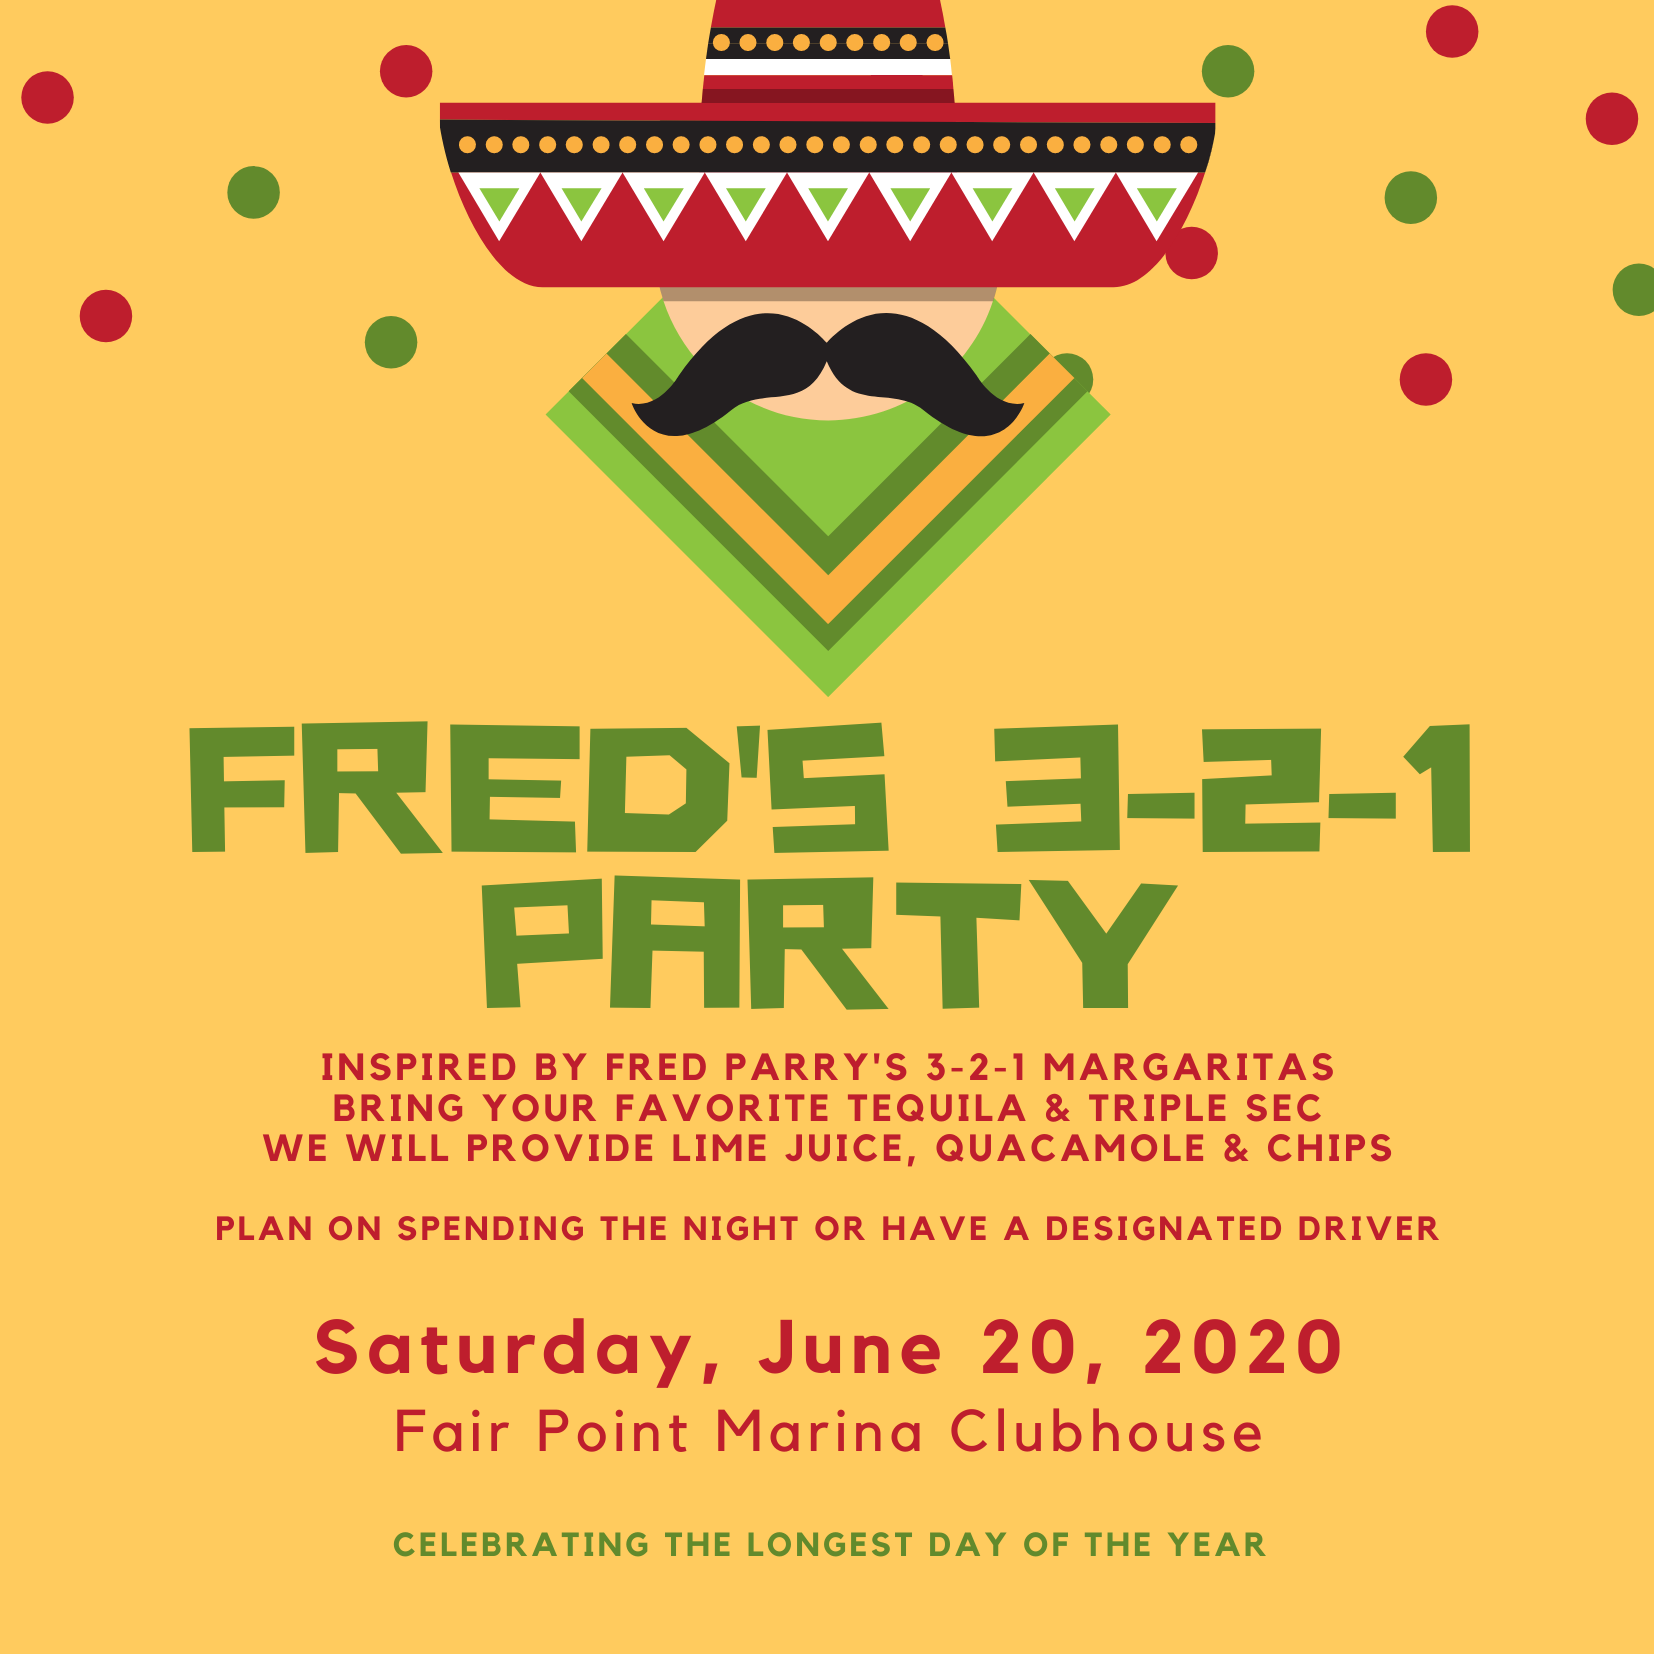 Poster for Fred's 3-2-1 Party at Fair Point Marina on June 20